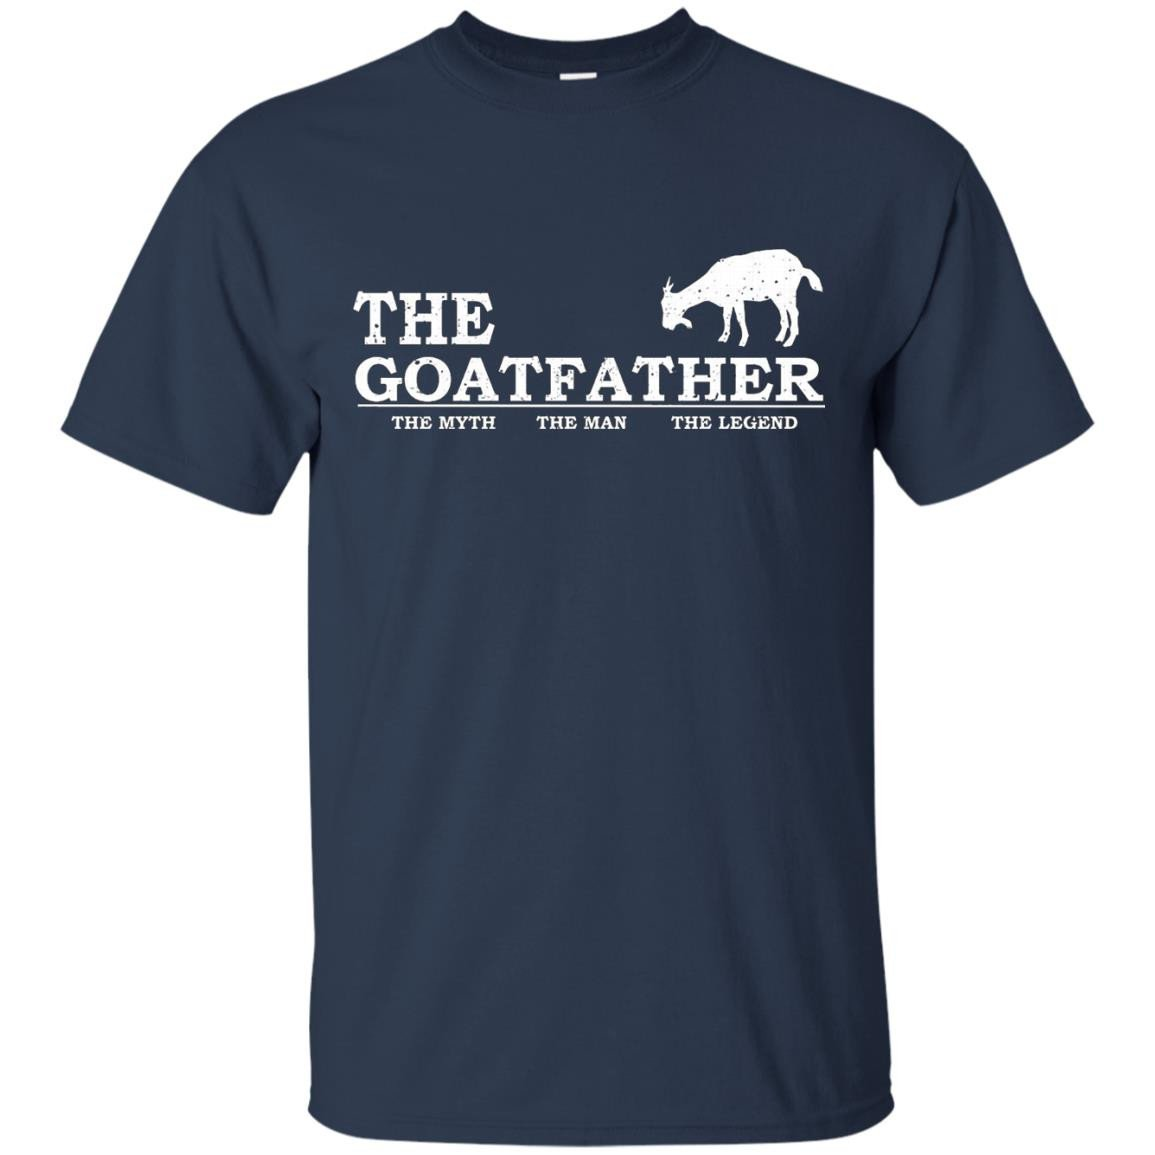 Men's Goat Father T-Shirt Pet Lover Father's Day Gift Tee